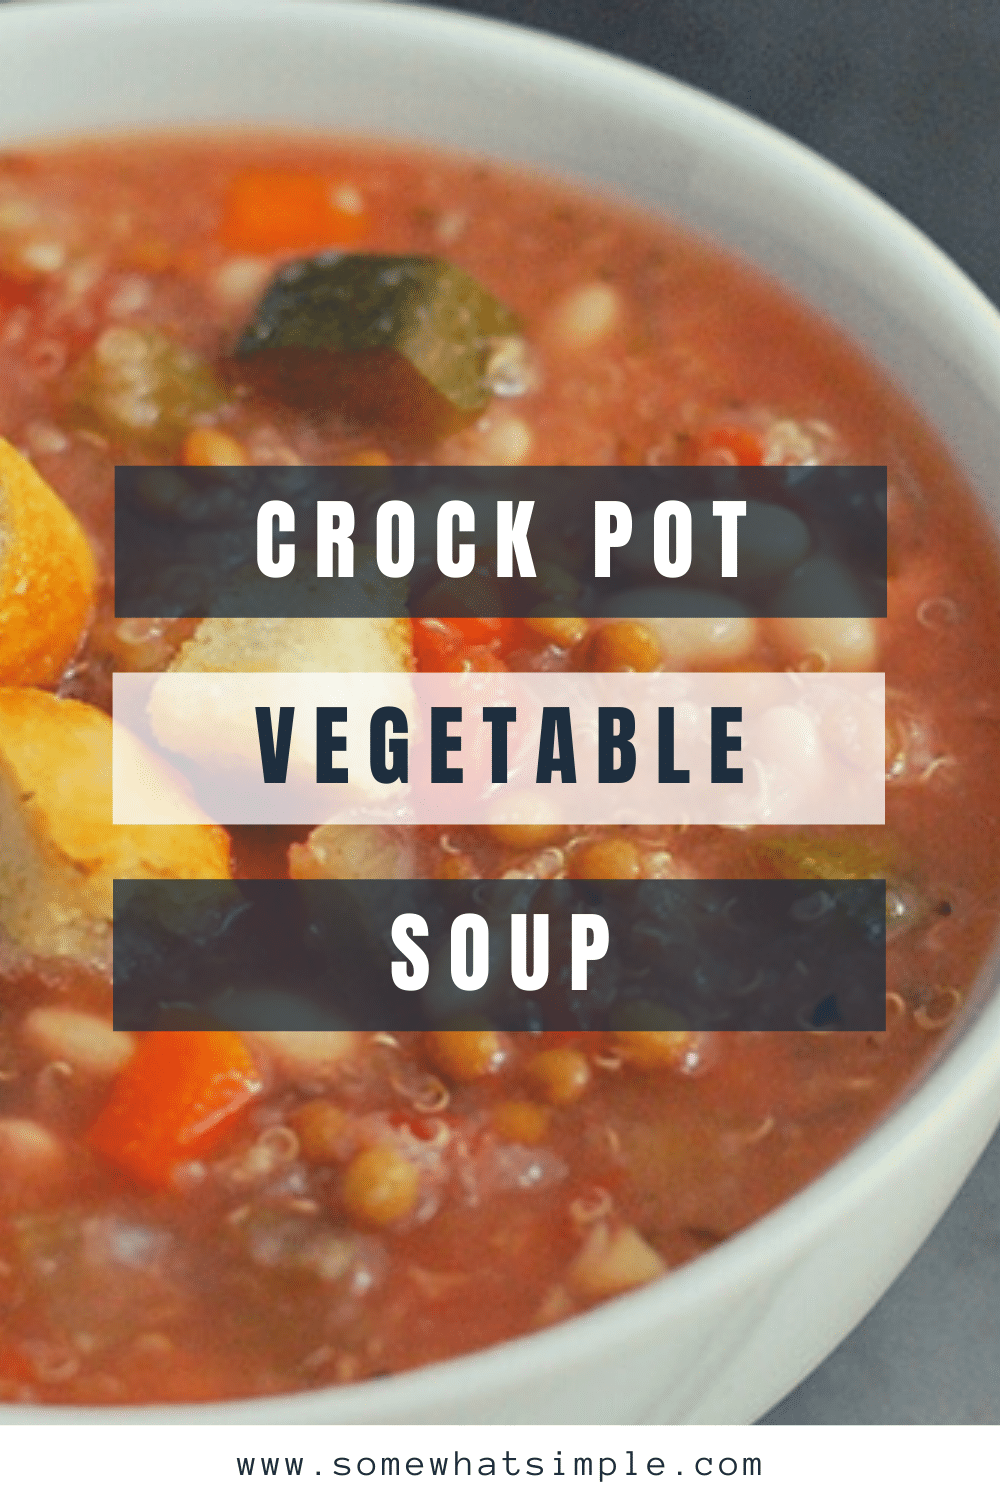 Crock pot vegetable soup is a hearty recipe that's incredibly easy to make. Loaded with your favorite vegetables, it's both healthy and delicious! Just place all of the ingredients in the slow cooker and you're all set. via @somewhatsimple